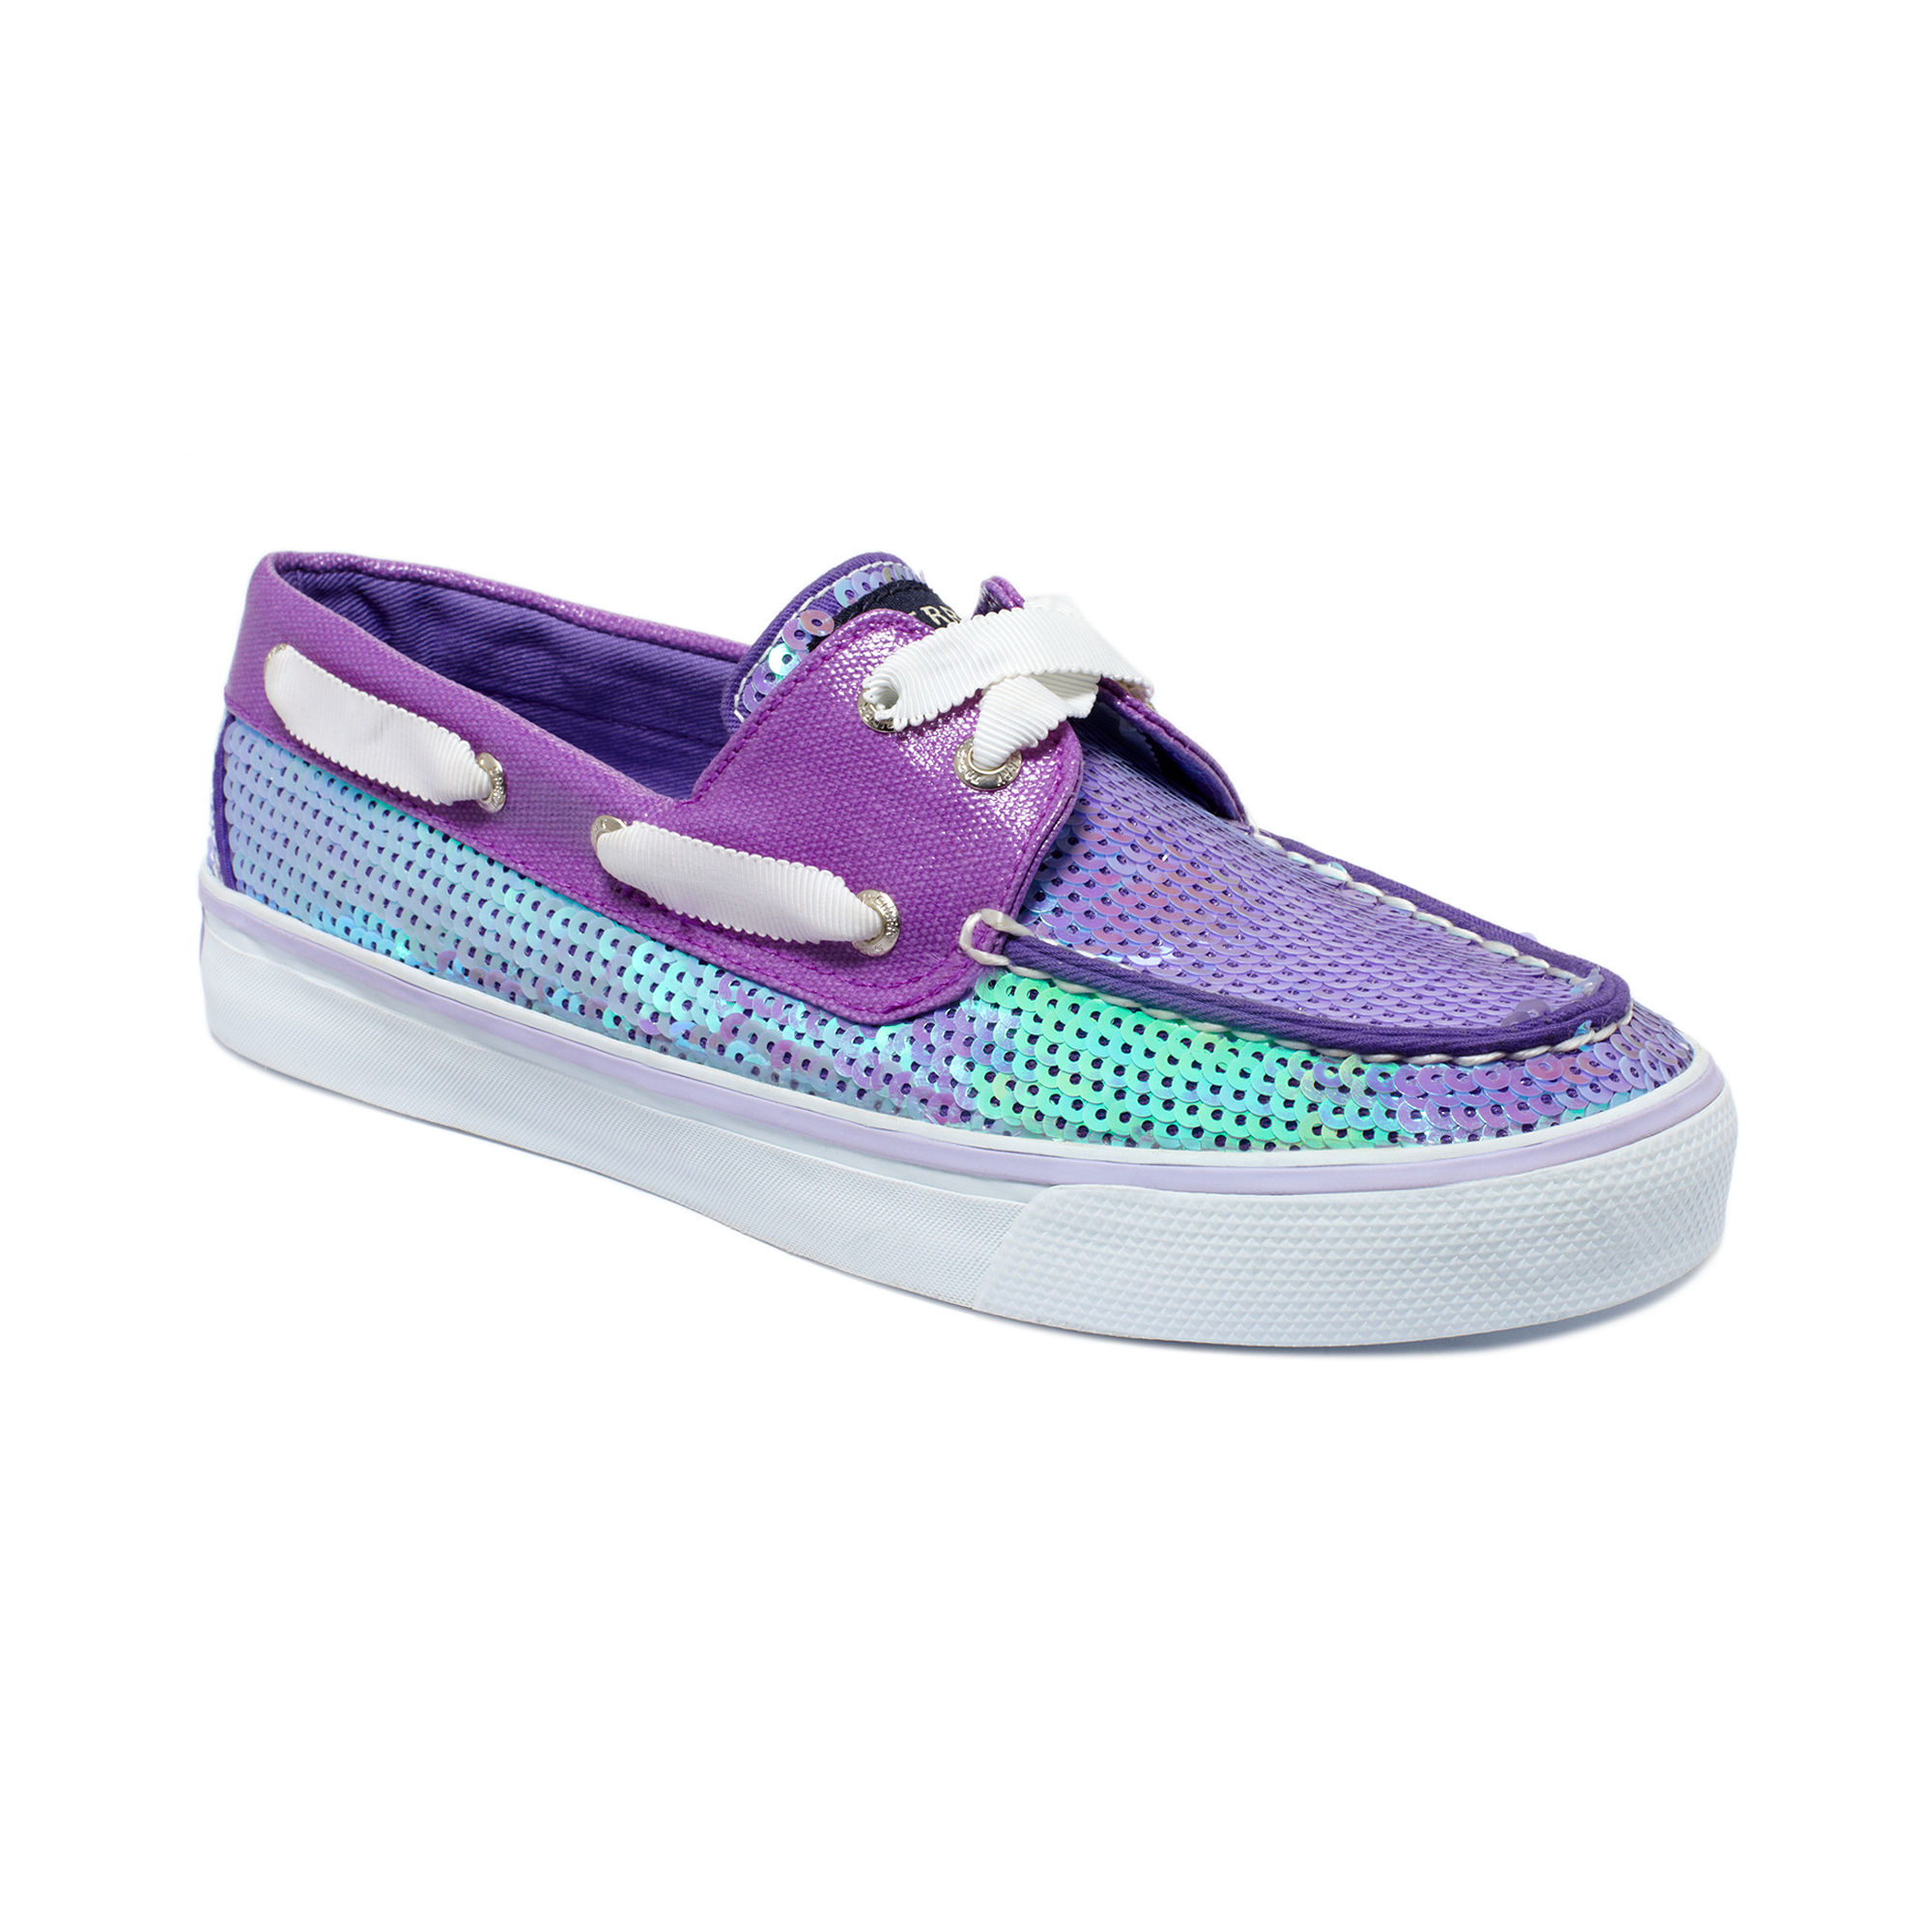 Sperry Top Sider Sequin Boat Shoes